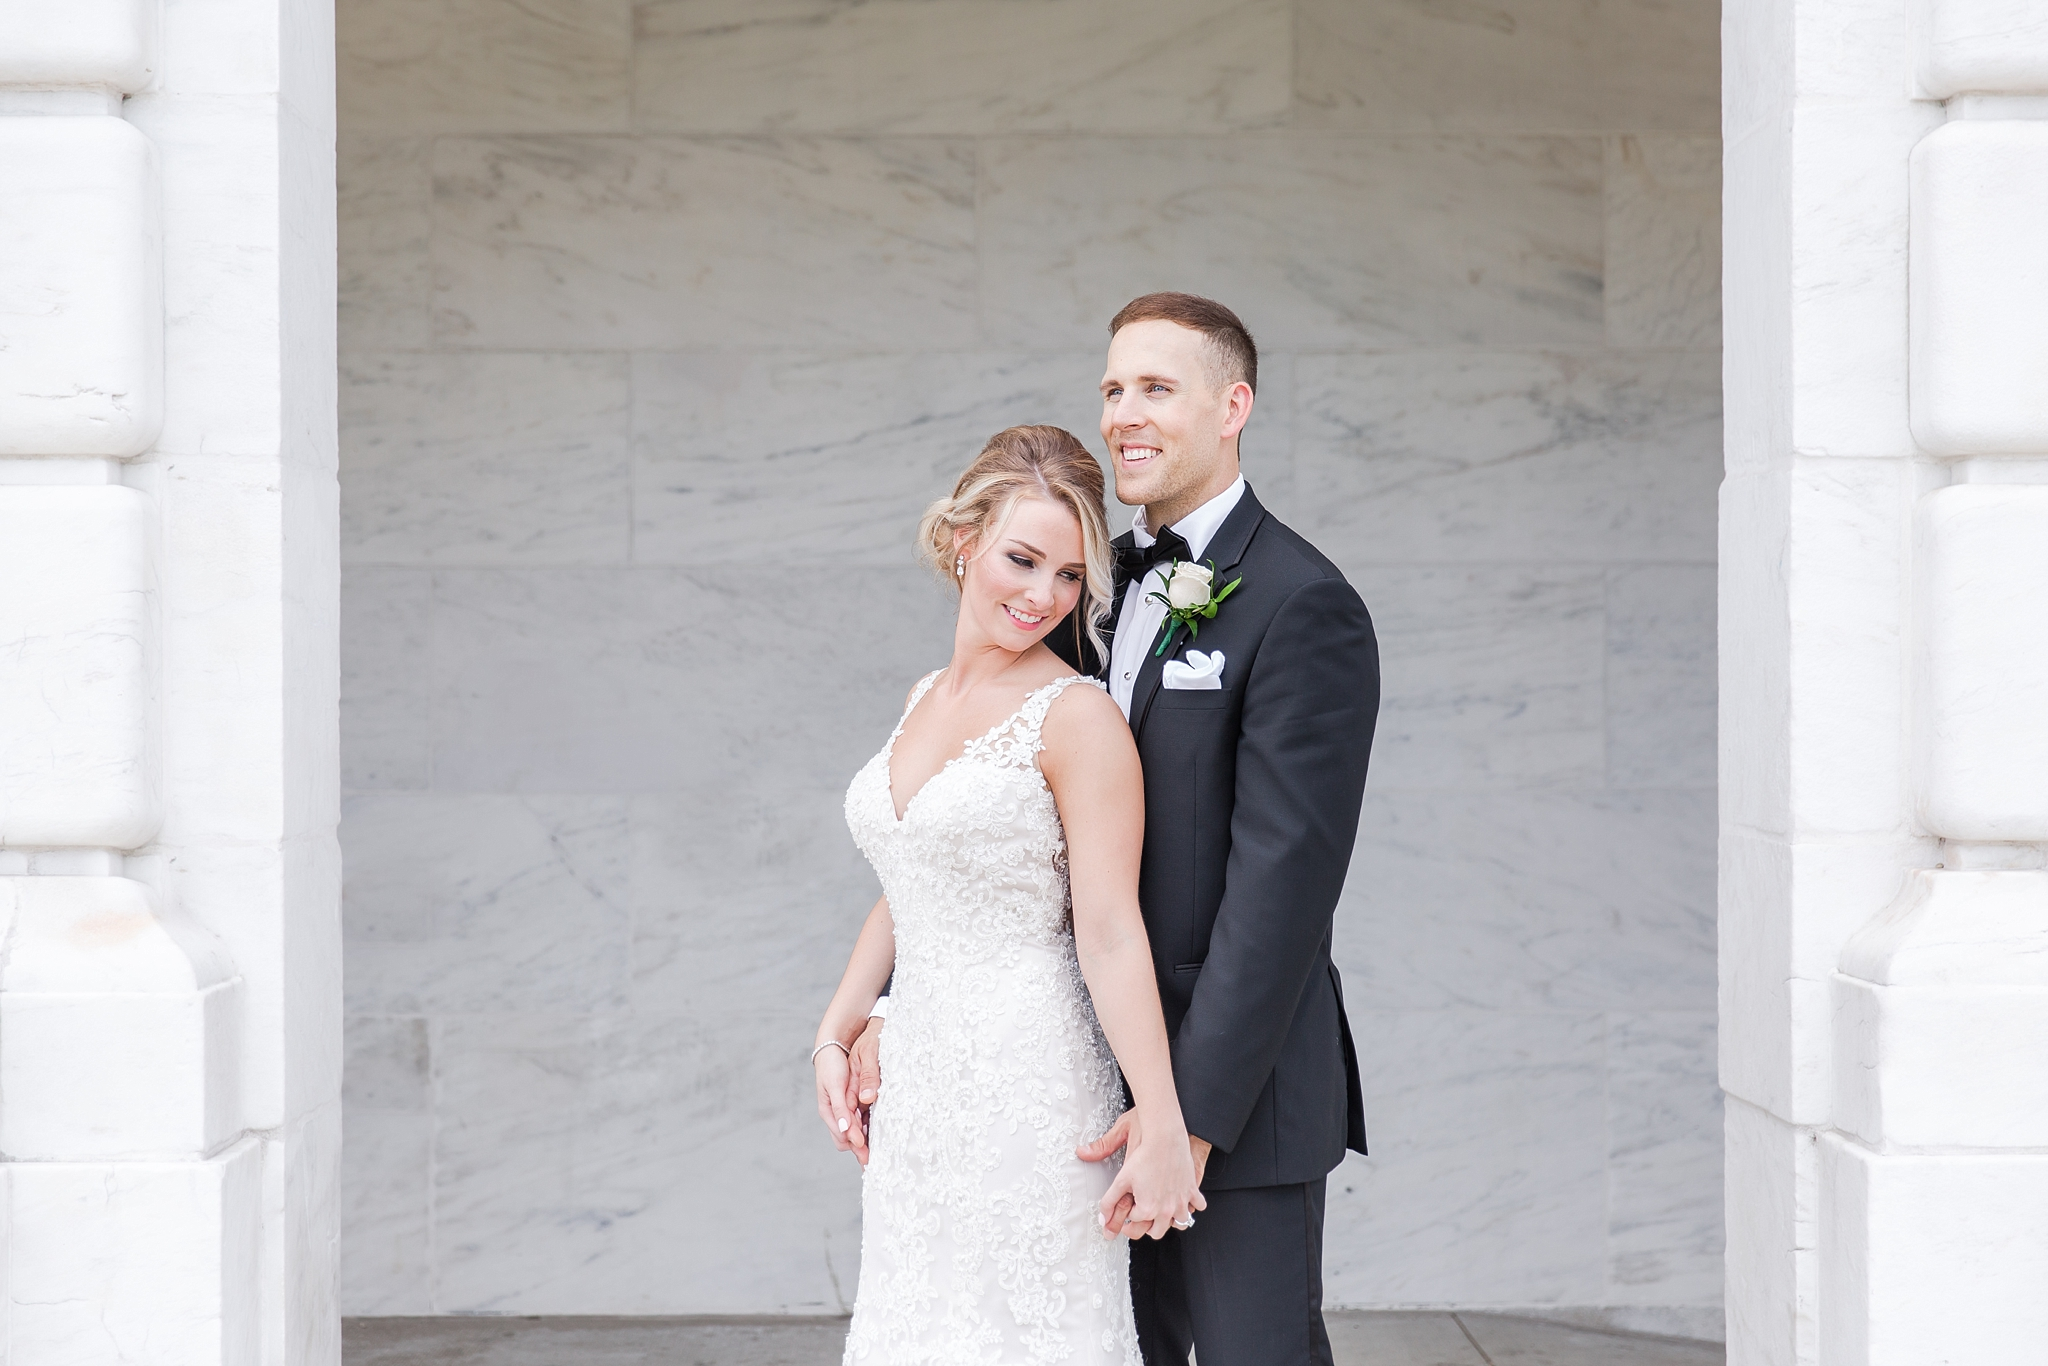 candid-romantic-wedding-photos-at-the-masonic-temple-belle-isle-detroit-institute-of-arts-in-detroit-michigan-by-courtney-carolyn-photography_0035.jpg